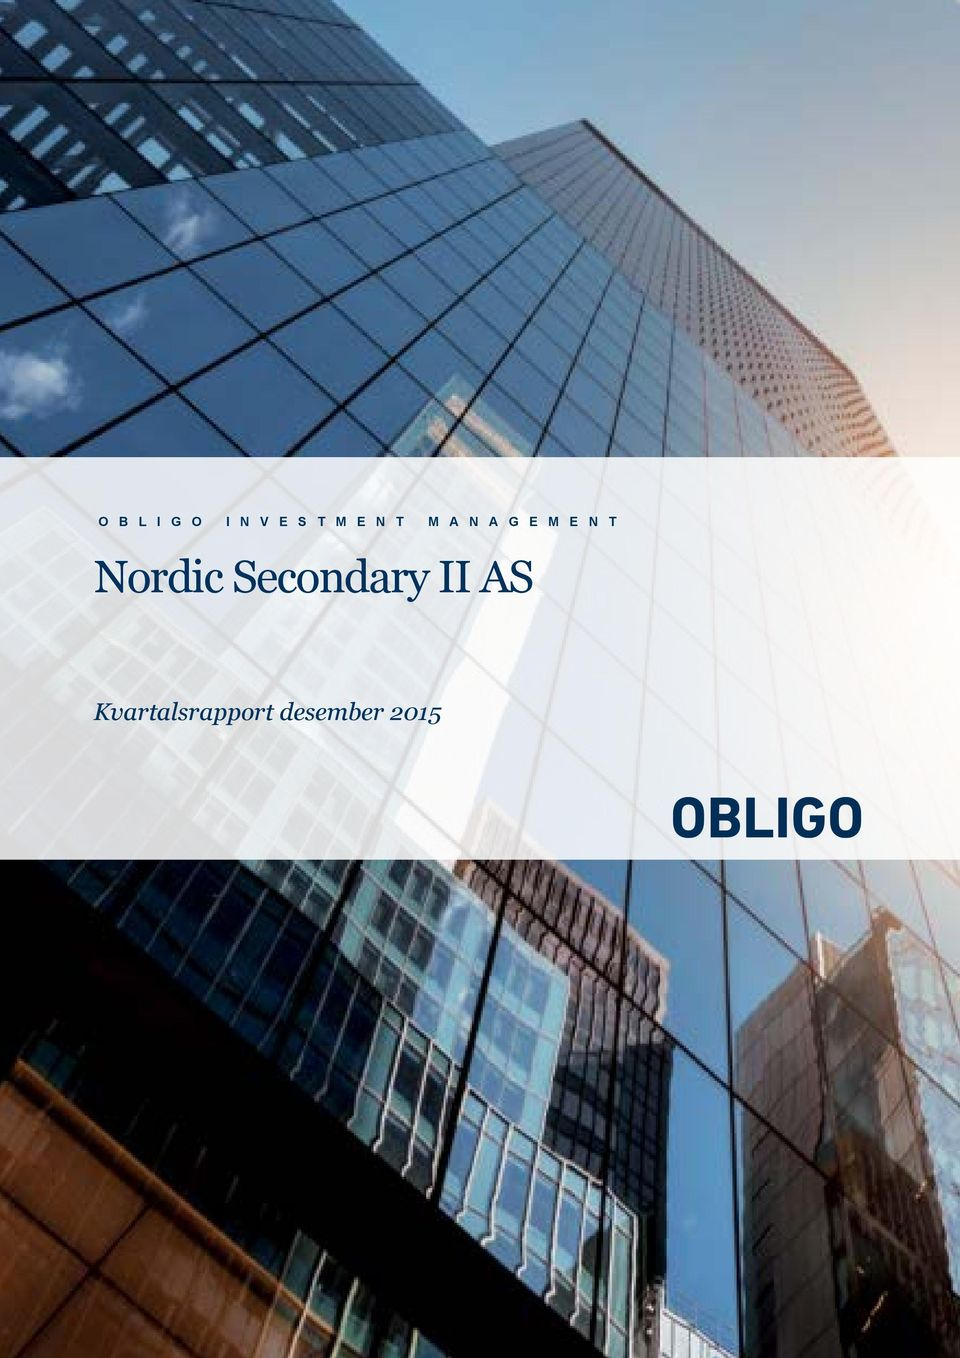 Nordic Secondary II AS